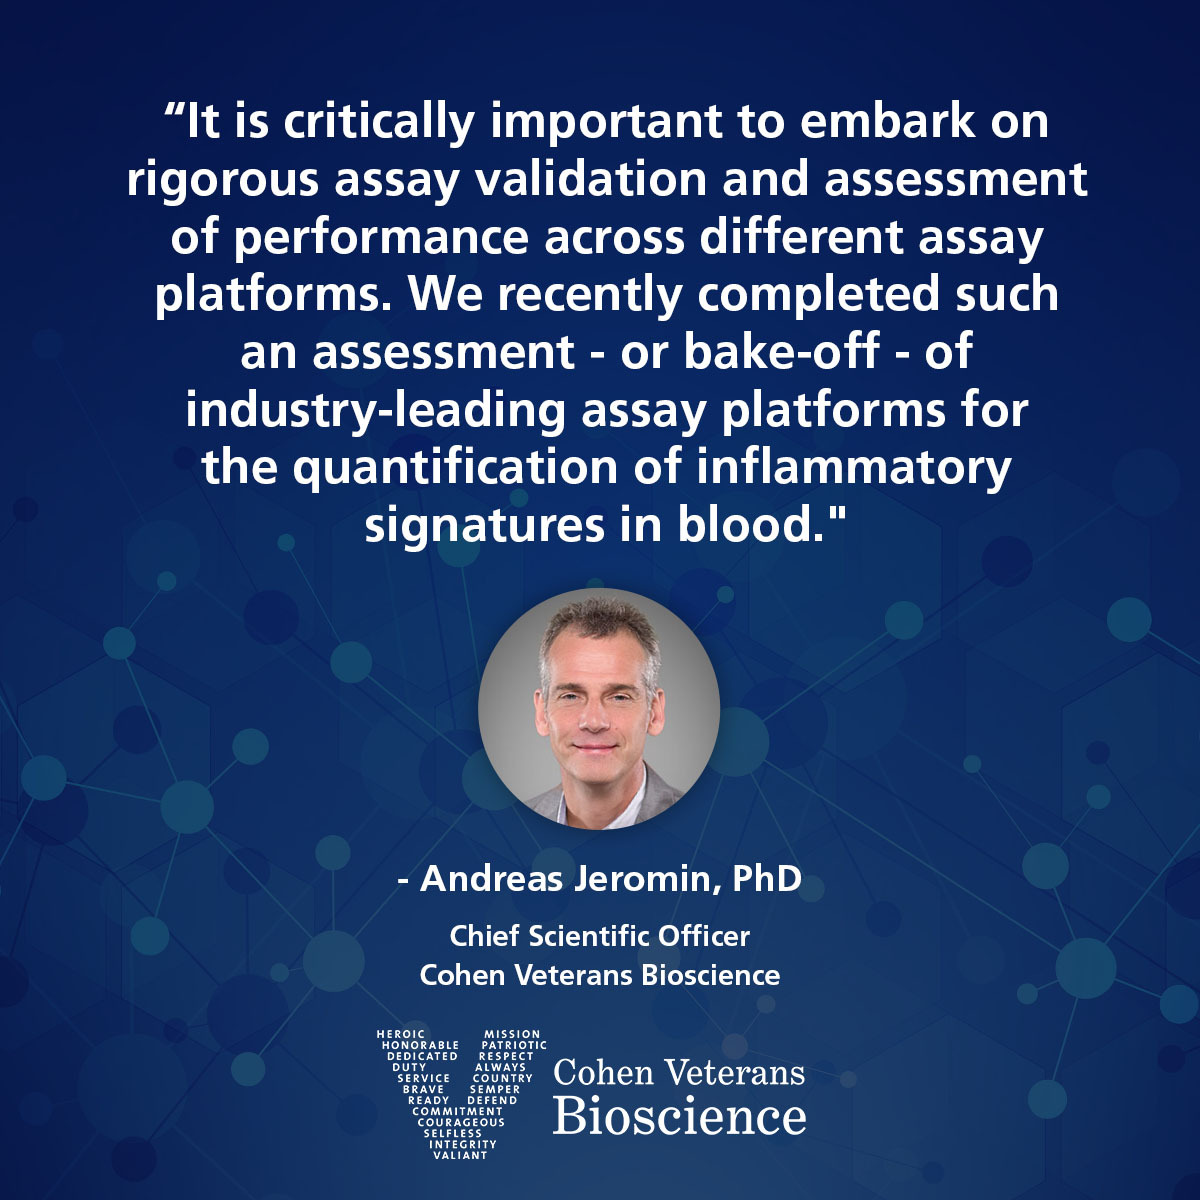 Quote from CSO Dr. Andreas Jeromin